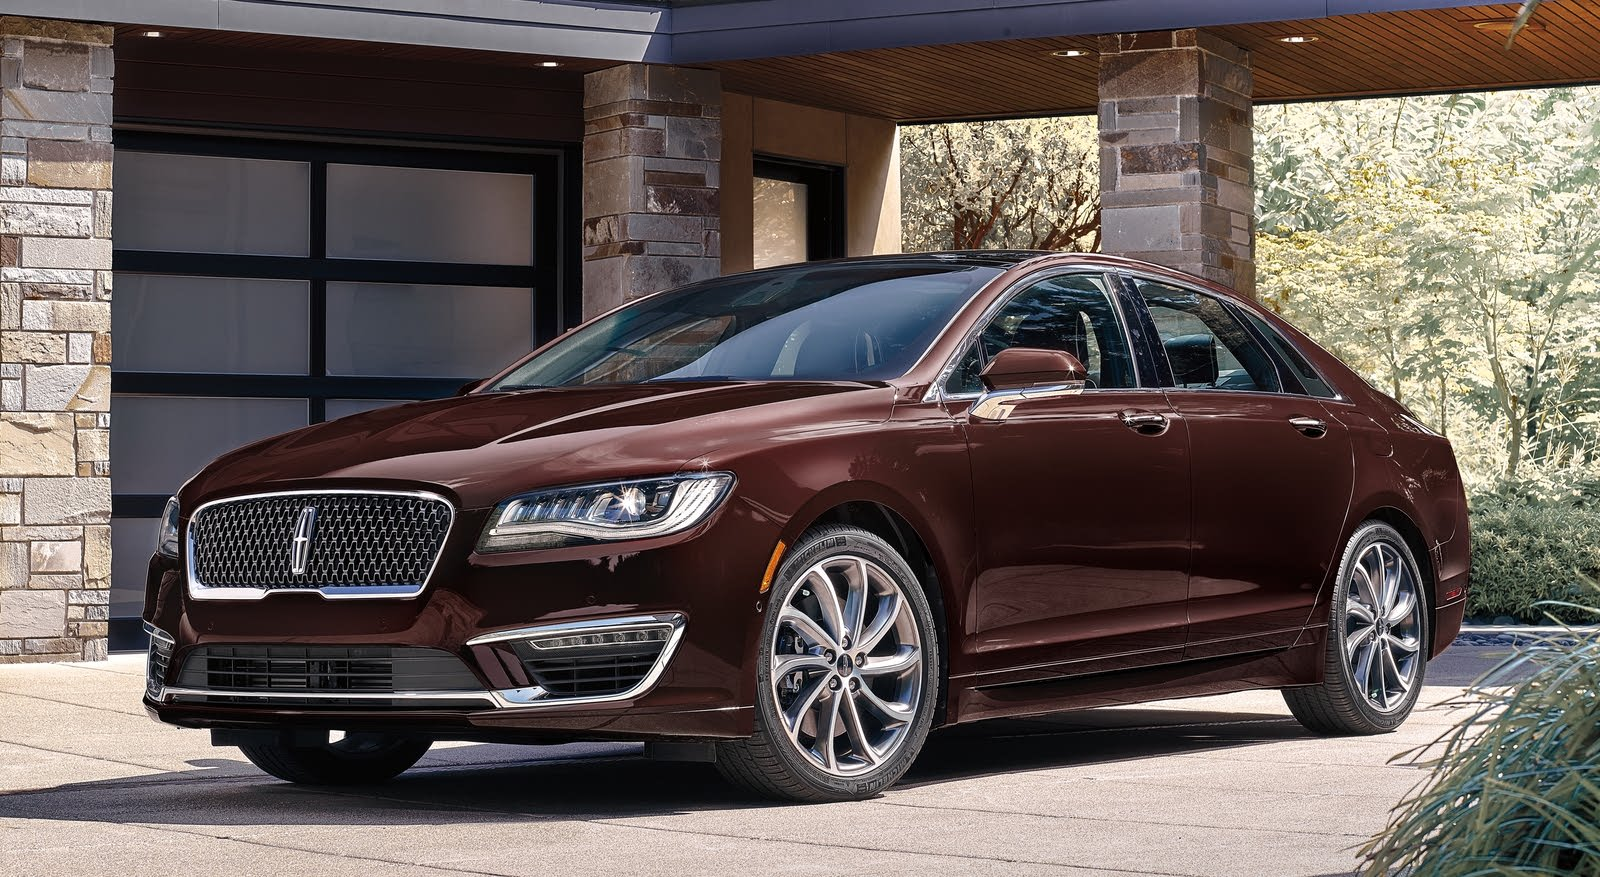 2020 Lincoln MKX Release